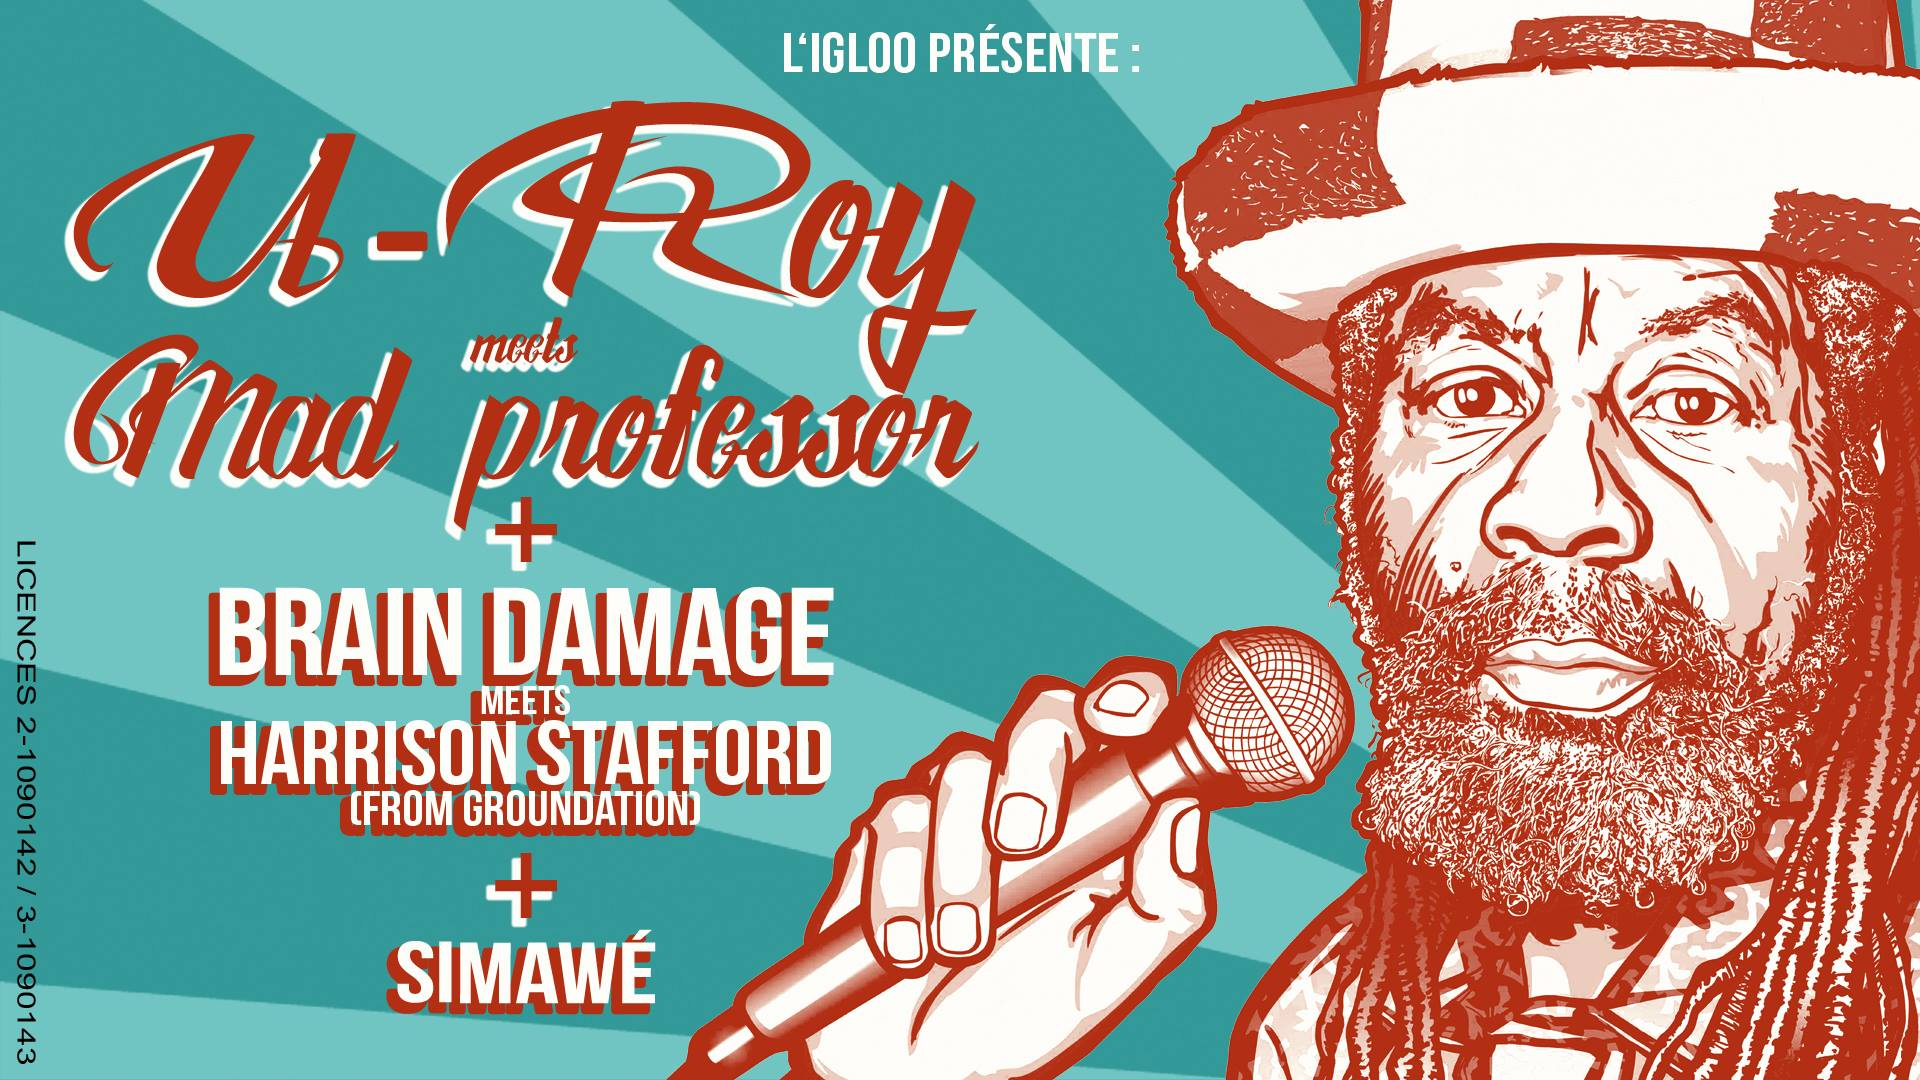 U-Roy & Mad Professor, Brain Damage & Harrisson Stafford, Simawe